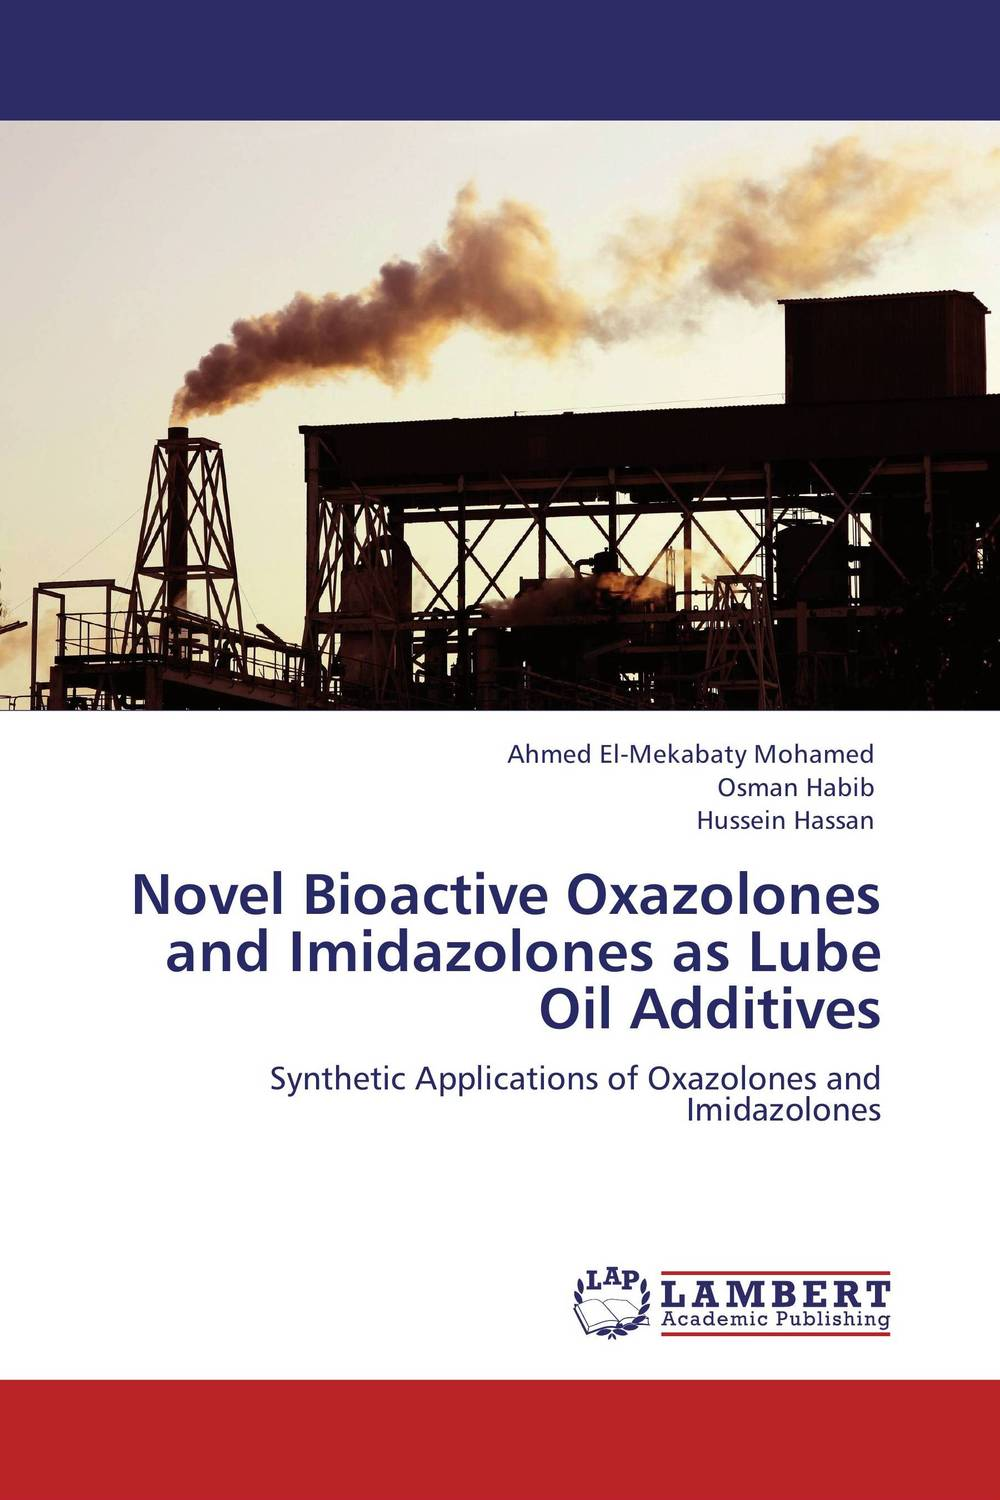 Novel Bioactive Oxazolones and Imidazolones as Lube Oil Additives johannes fink karl a concise introduction to additives for thermoplastic polymers